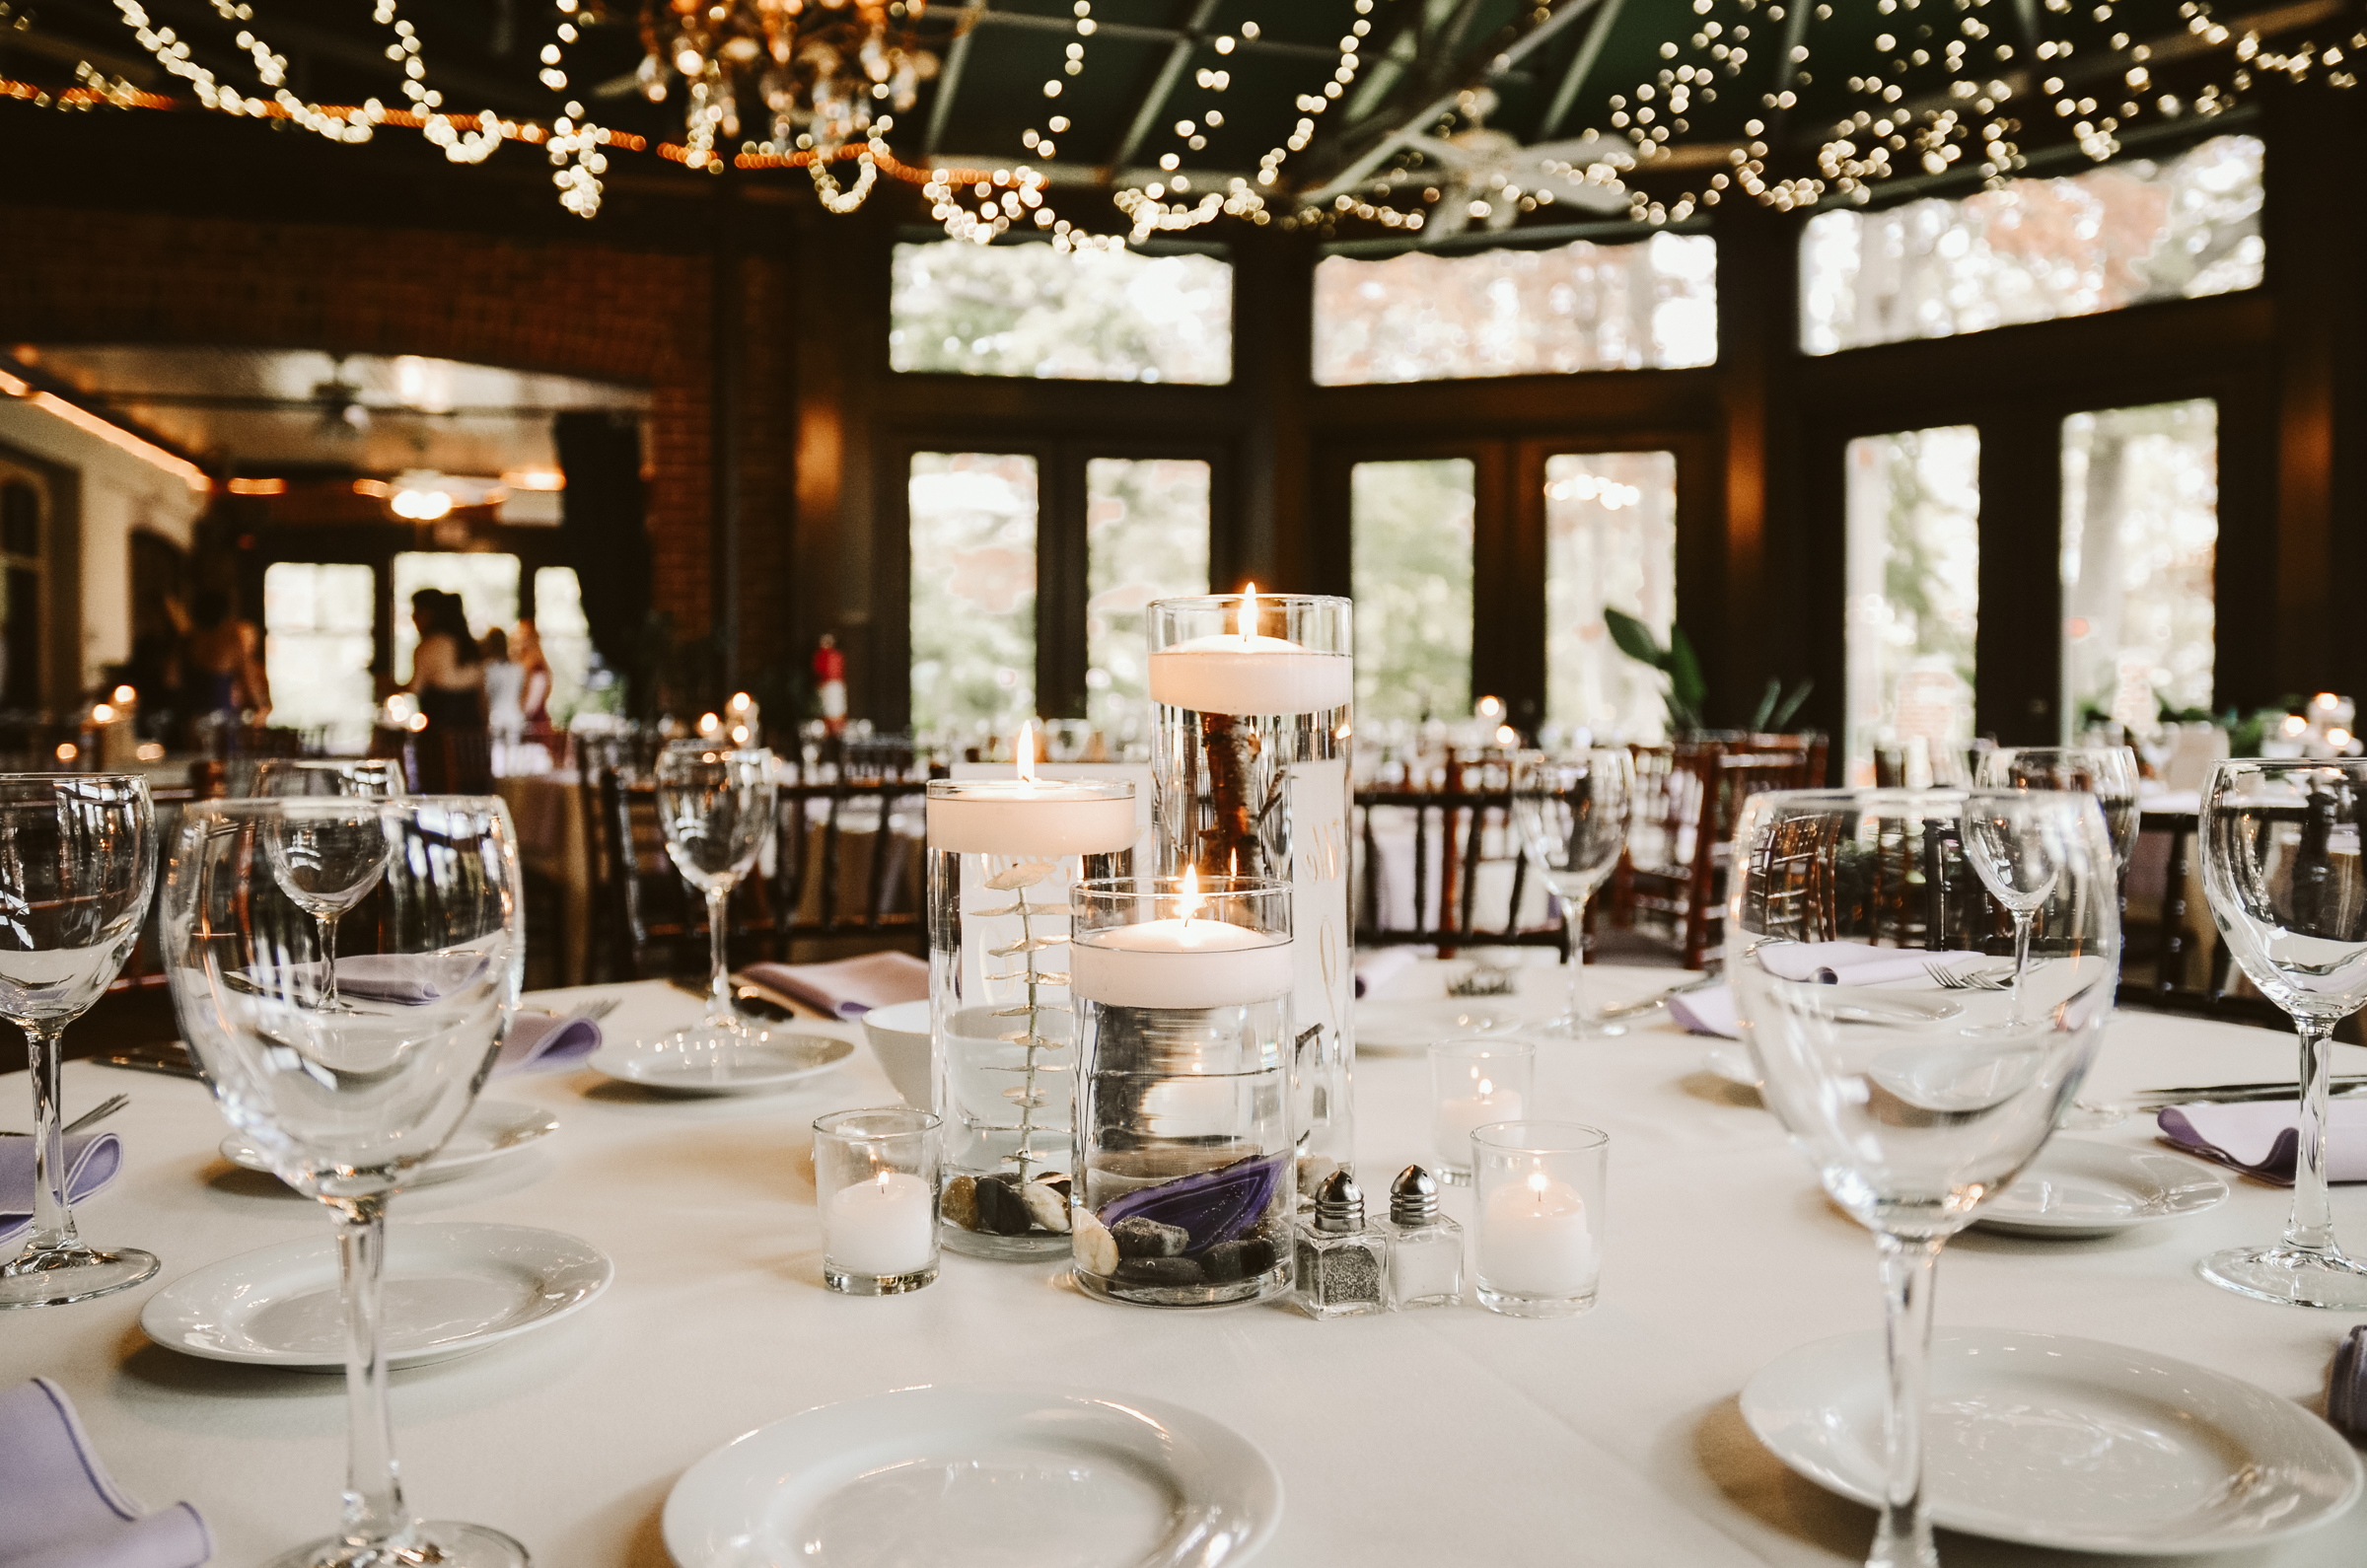 Jen and Drew's Wedding Edited 2019 web-44.jpg